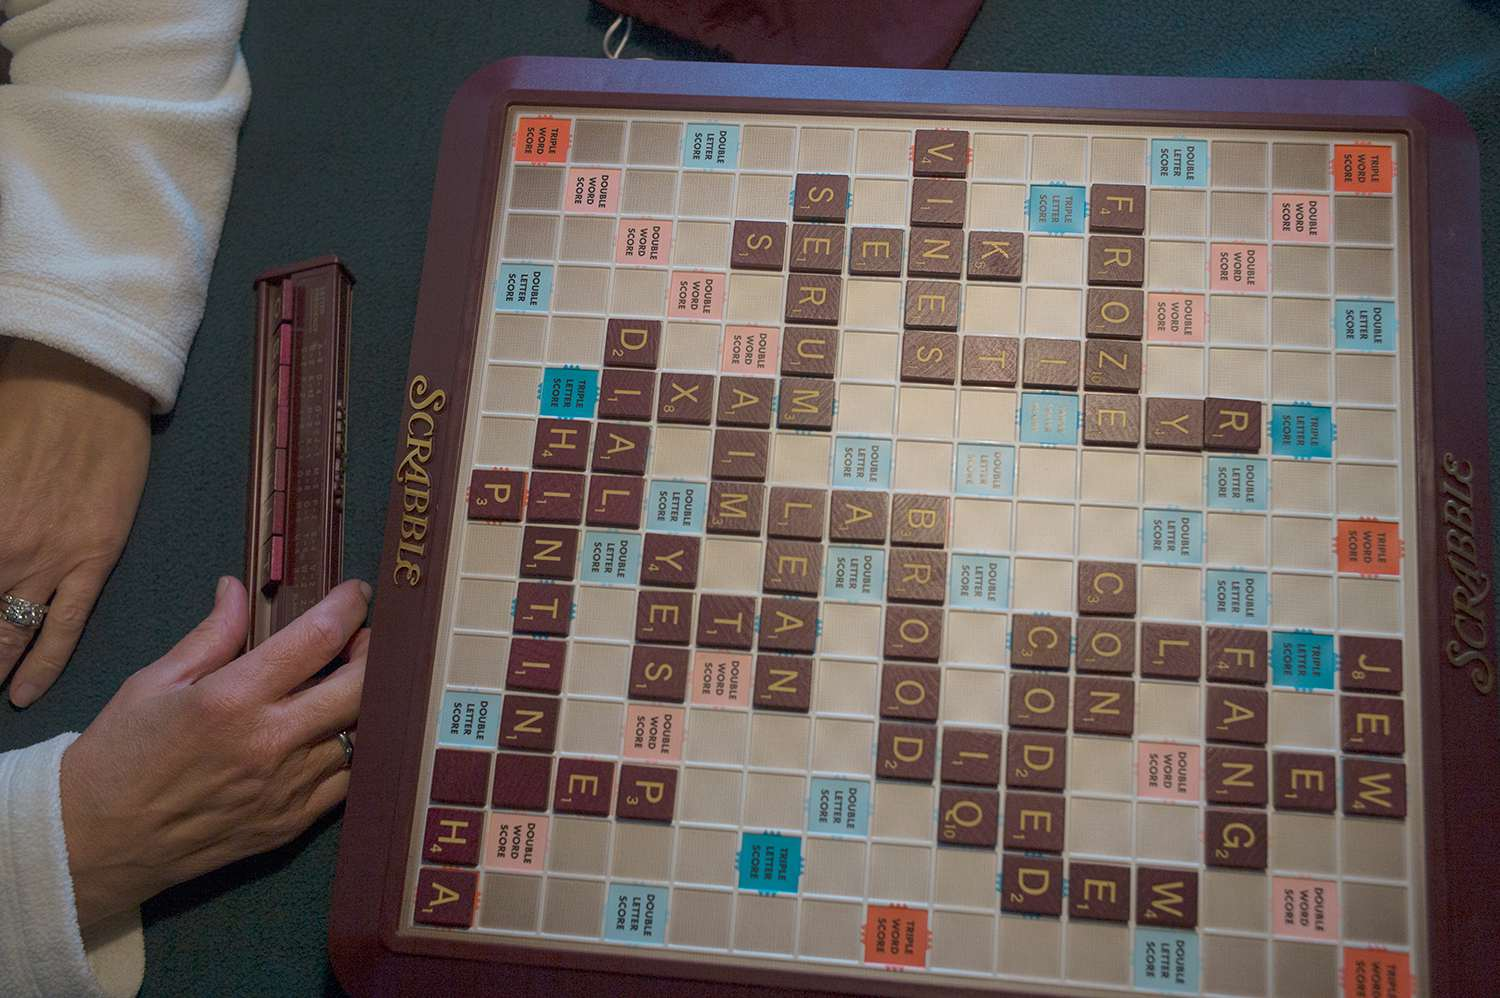 Scrabble board filled with numerous words.